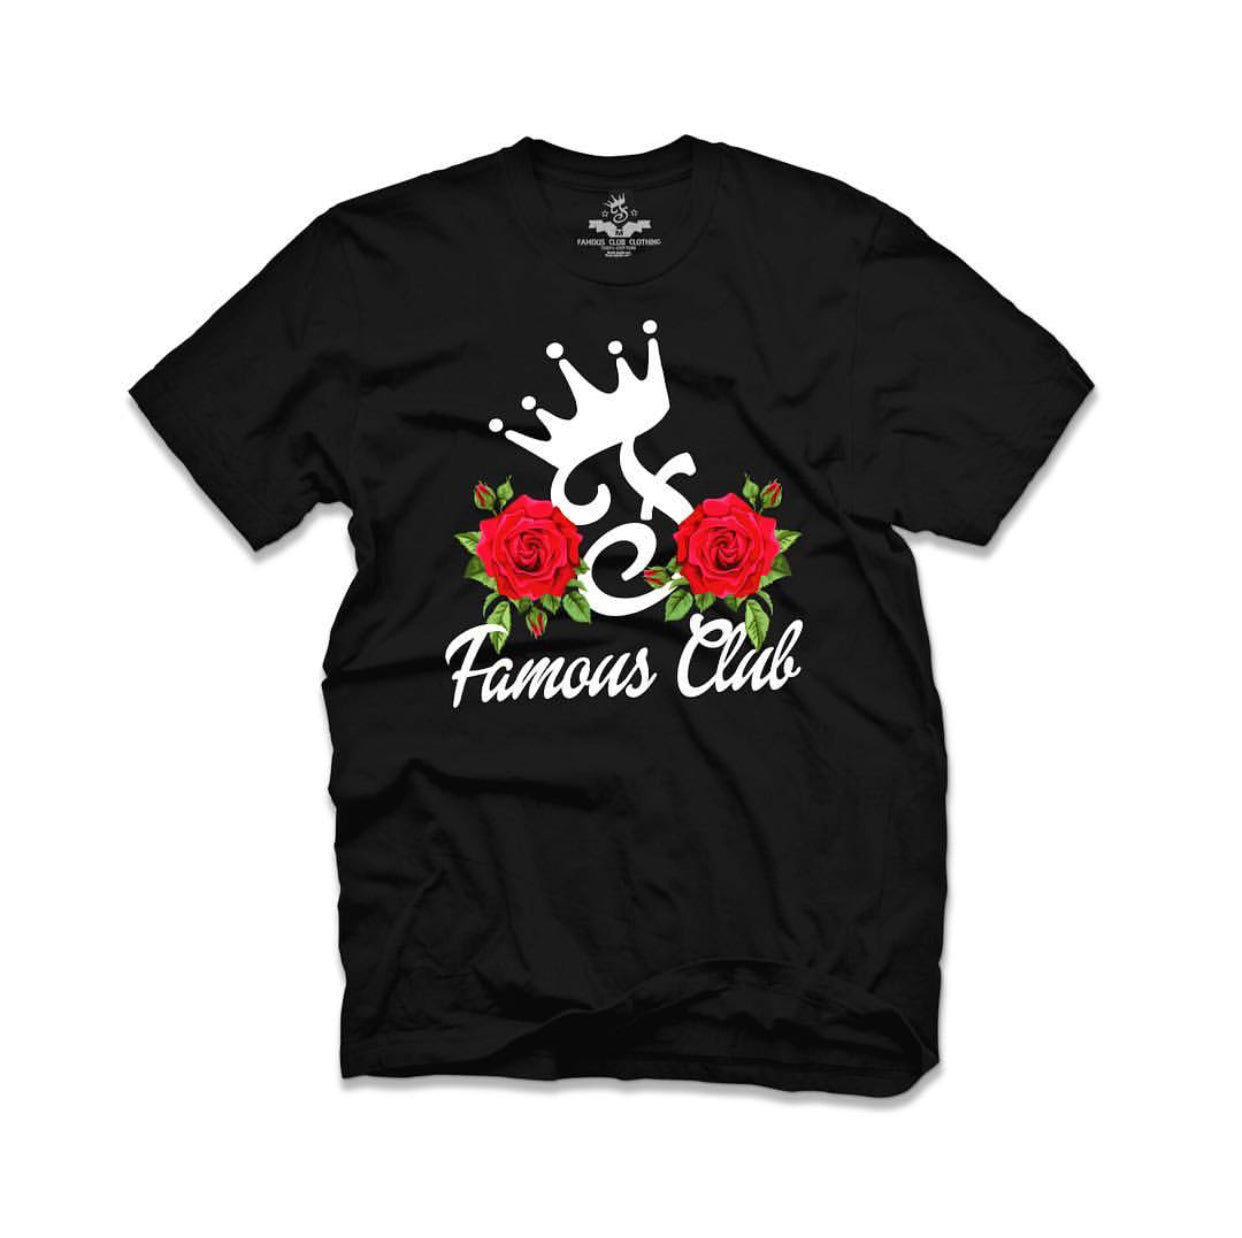 Rose Tee Black - Famous Club Clothing